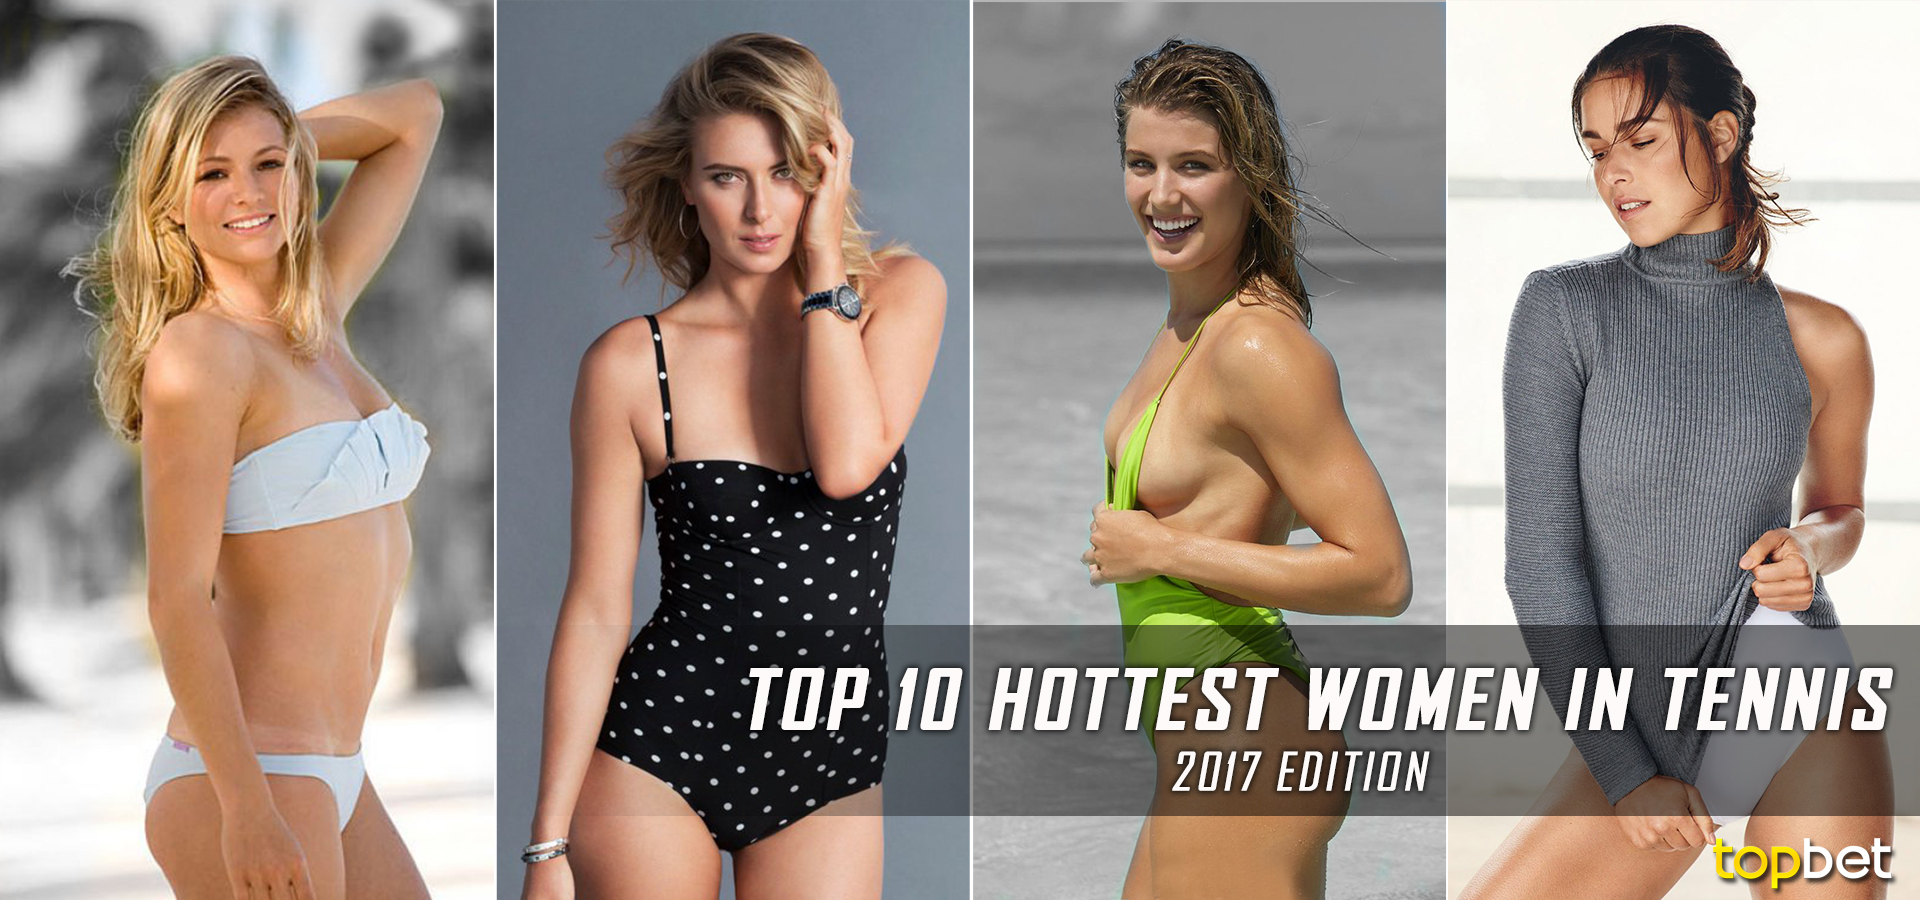 2017 hottest women in tennis right now